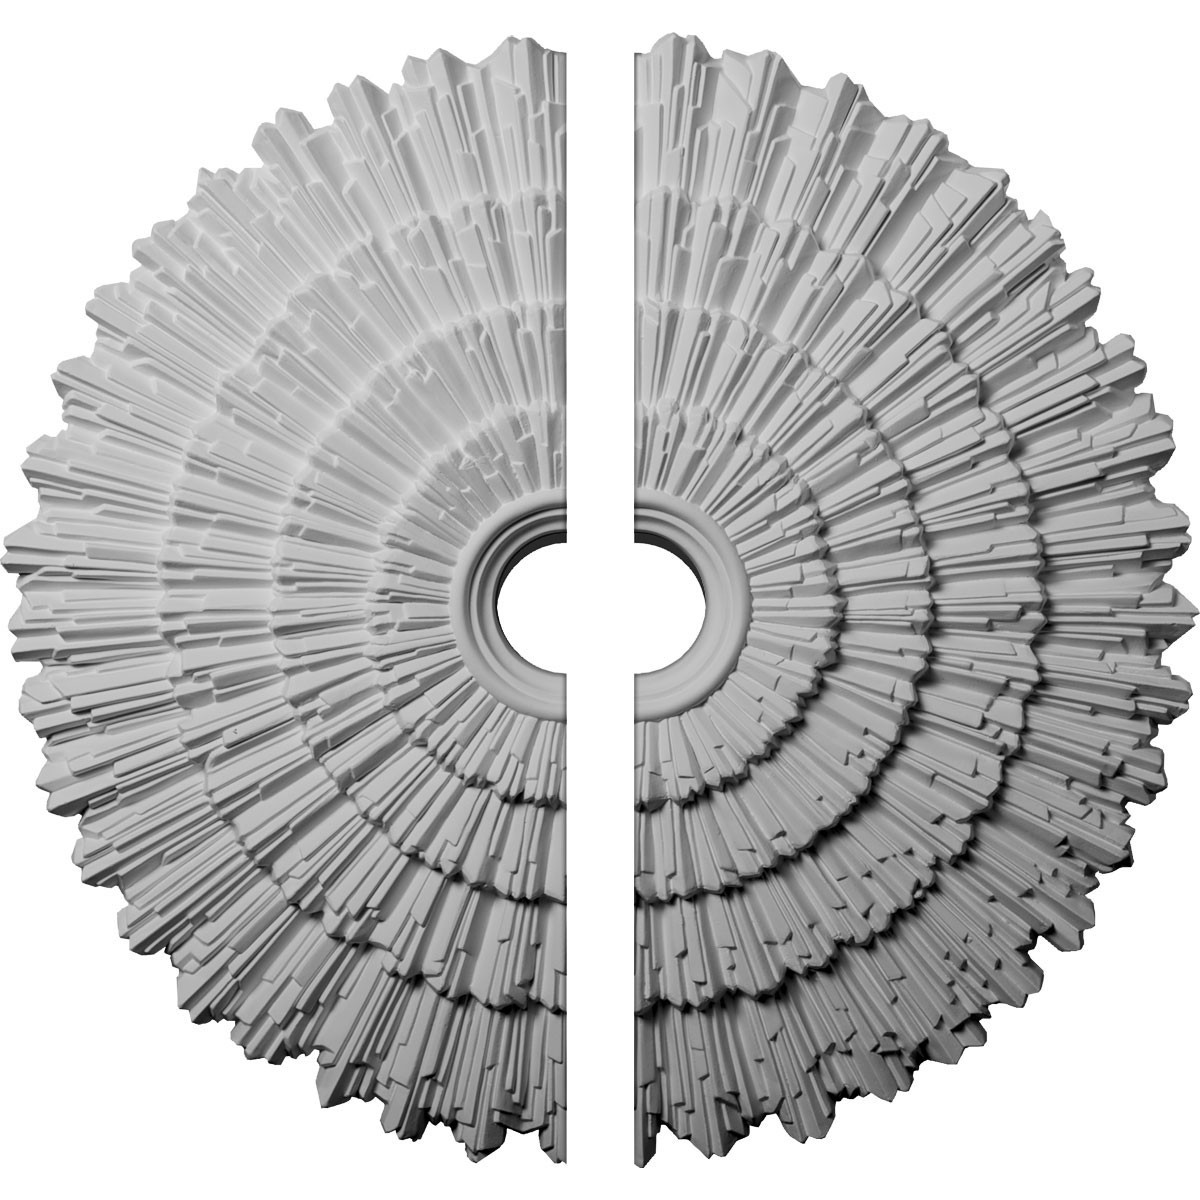 """EM-CM24EN2 - 24 3/4""""OD x 3 1/4""""ID x 1 7/8""""P Eryn Ceiling Medallion, Two Piece (Fits Canopies up to 4"""")"""